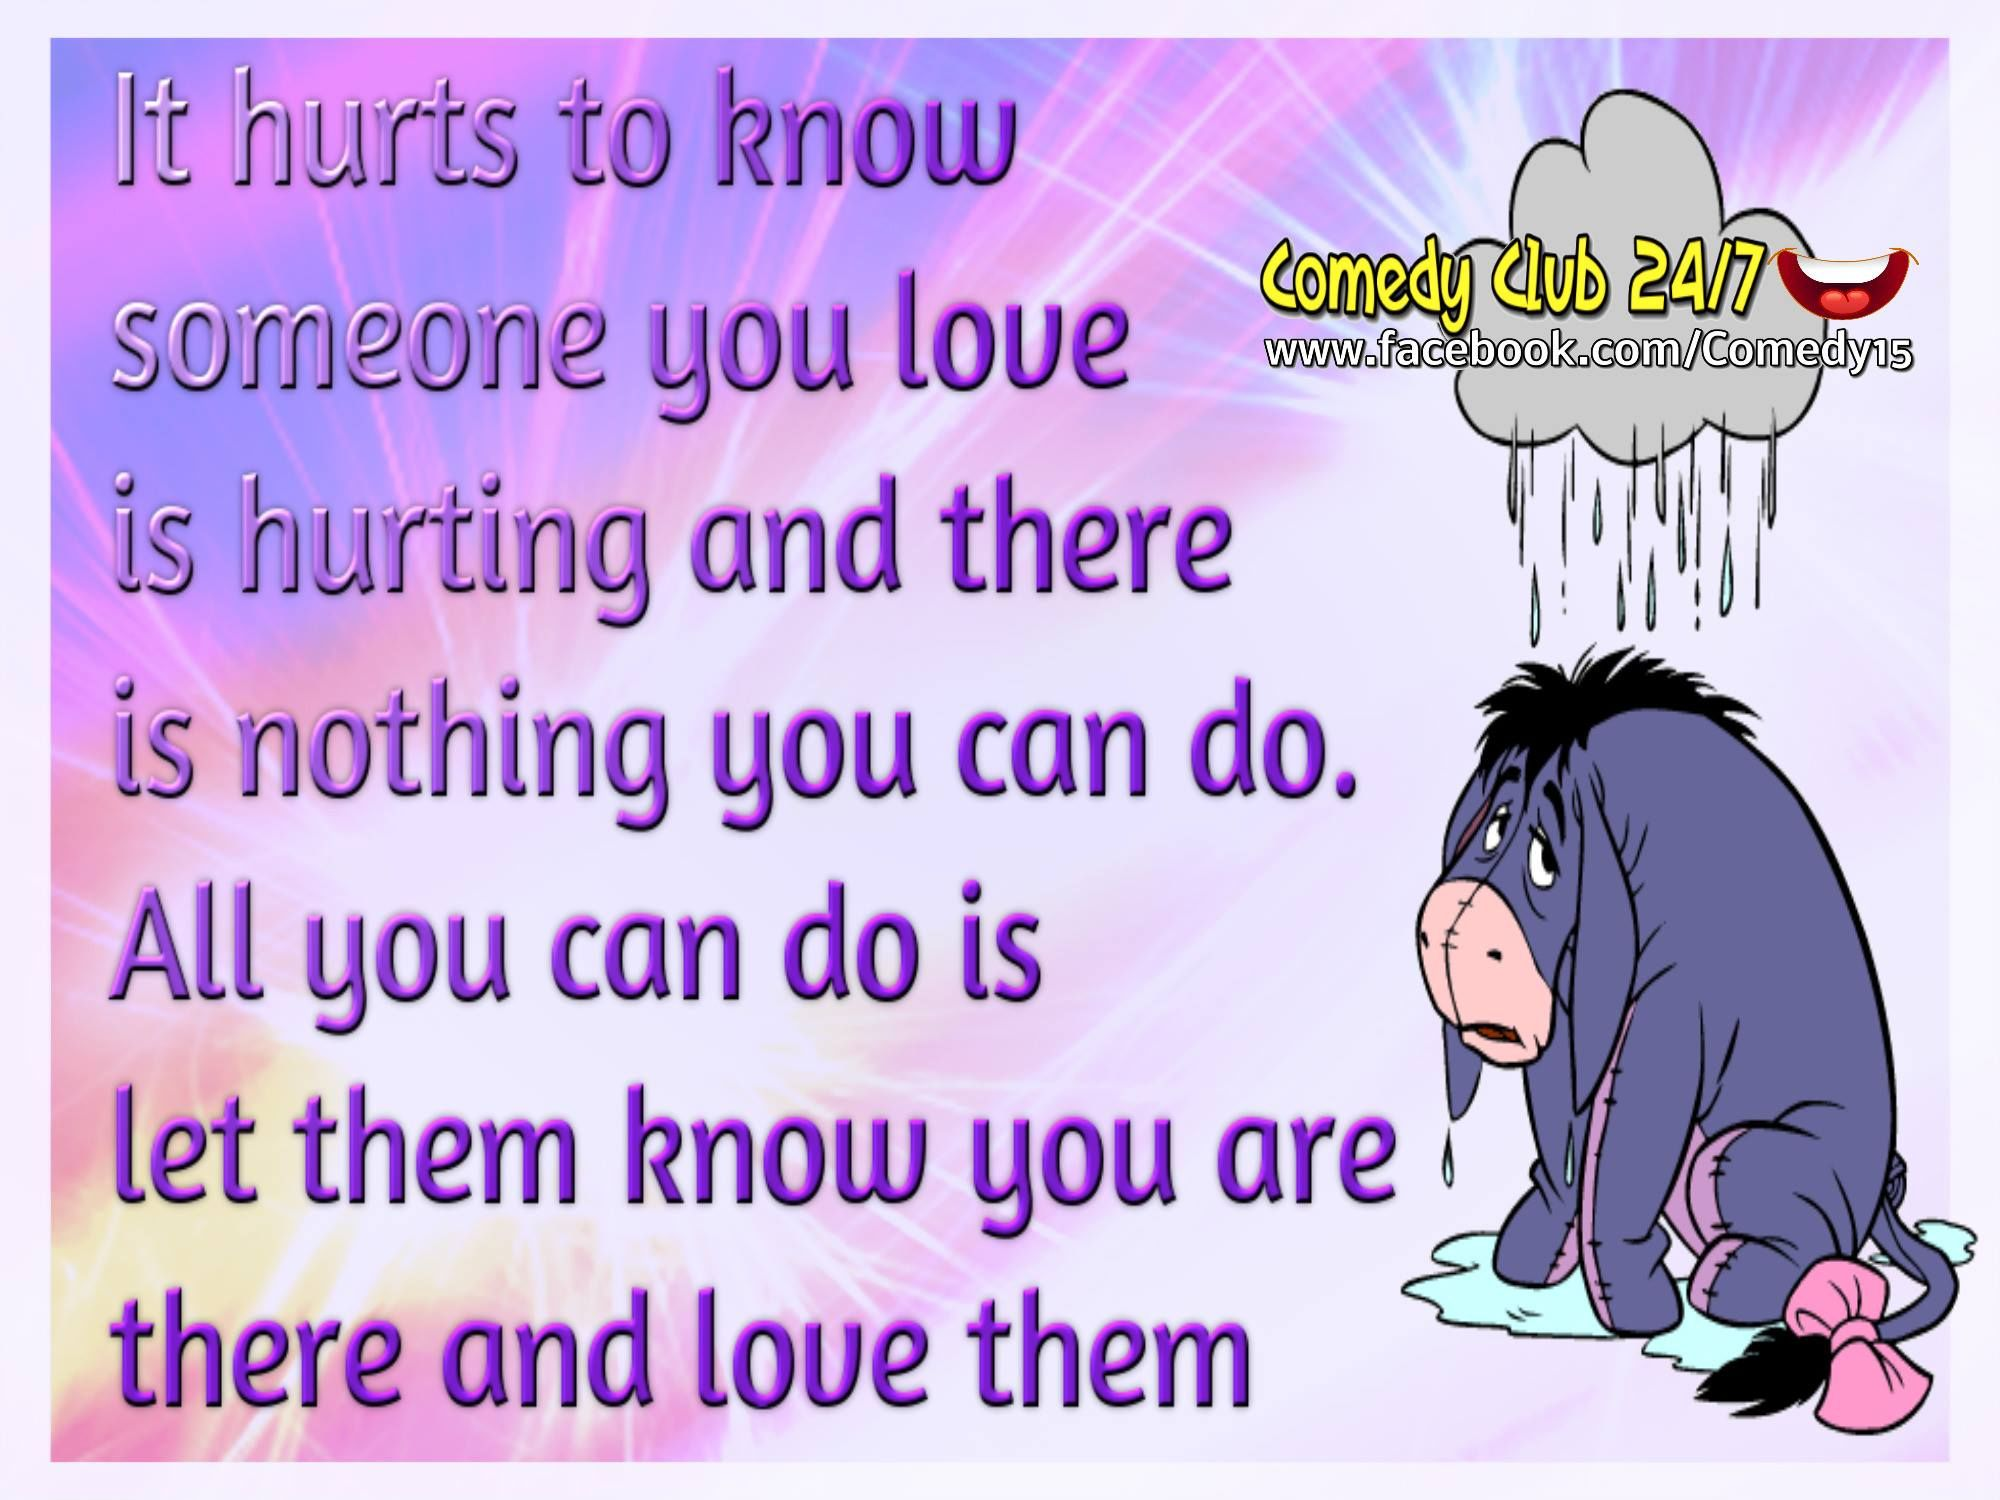 it hurts when aomeone you know is hurting and there is nothing you